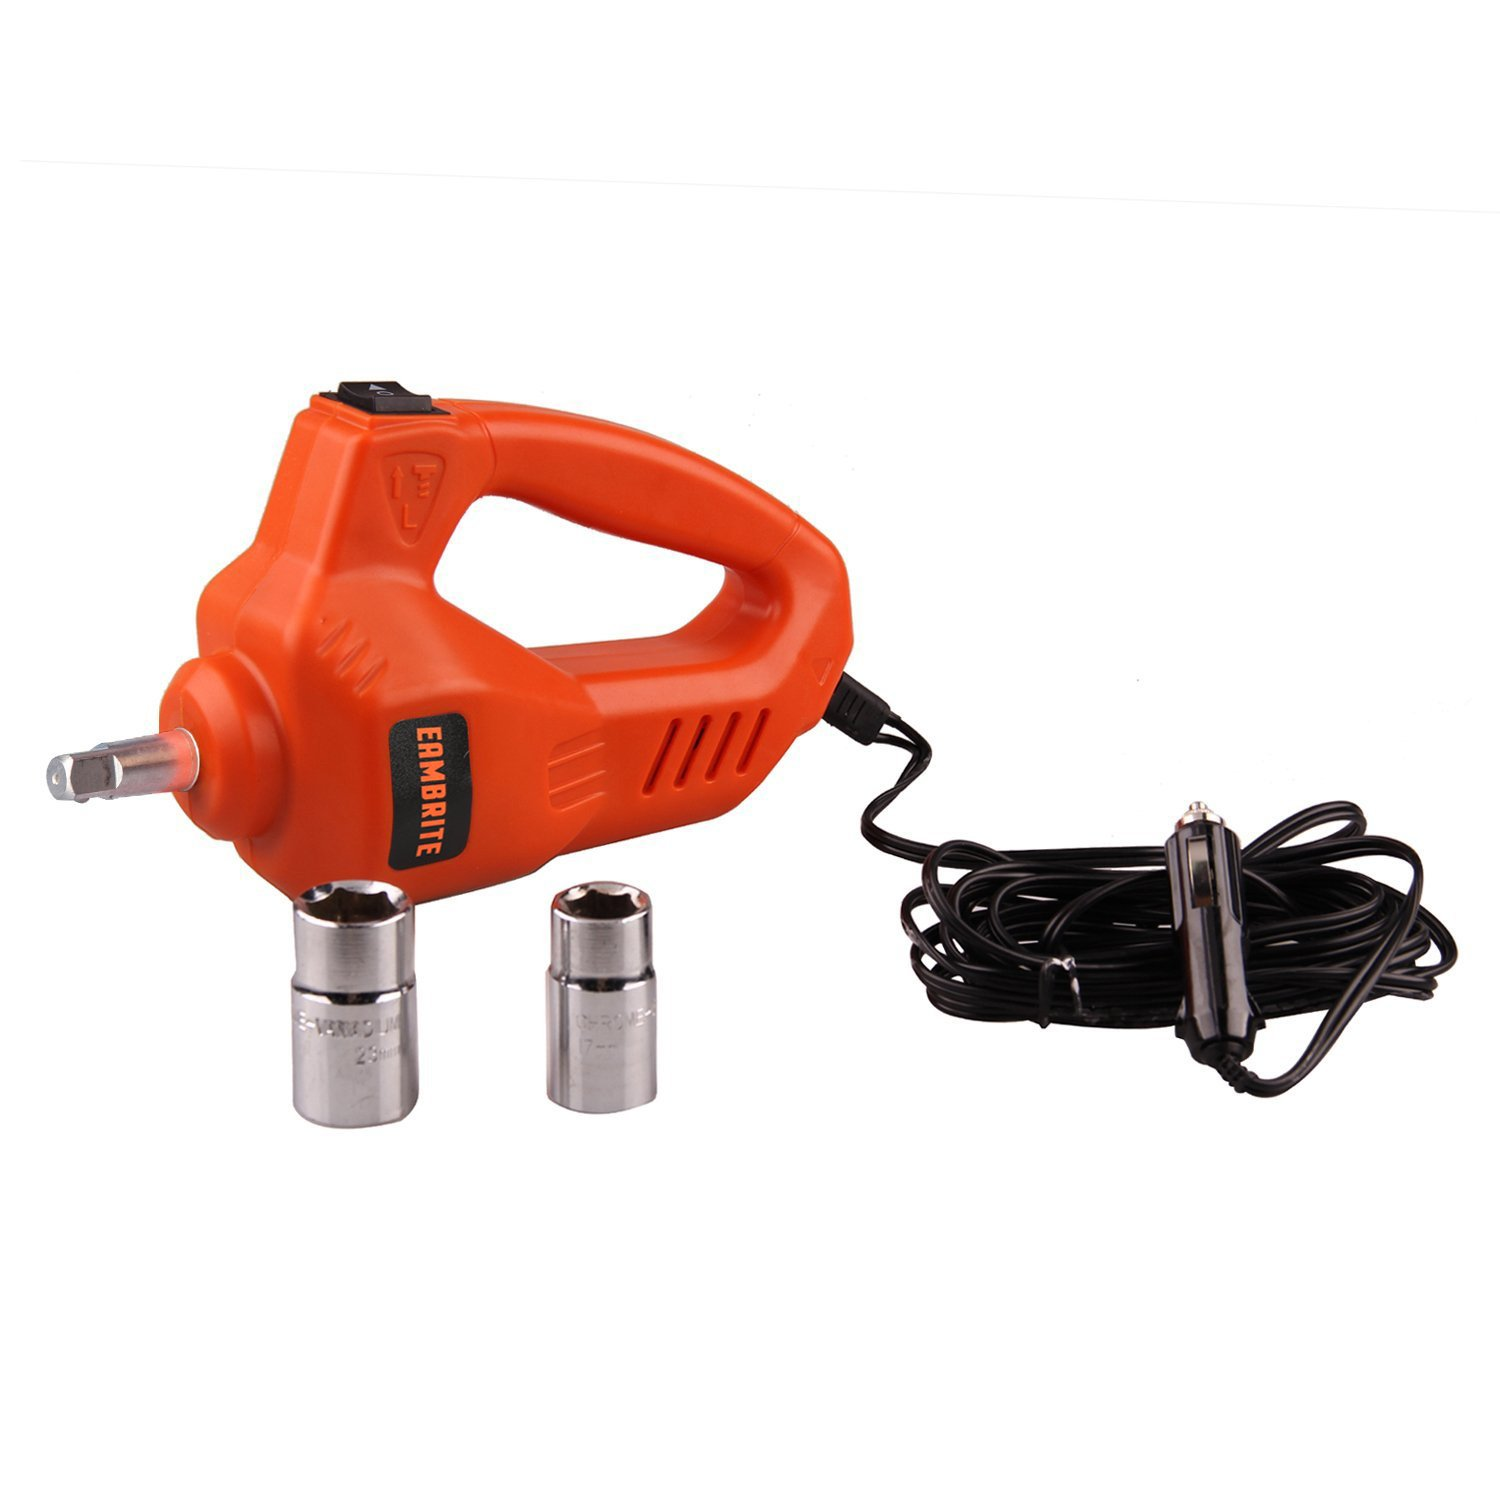 12V DC 1 Ton Electric Hydraulic Floor Jack Set with Impact Wrench For Car Use (6.1-17.1 inch, Orange) by EAMBRTE (Image #7)